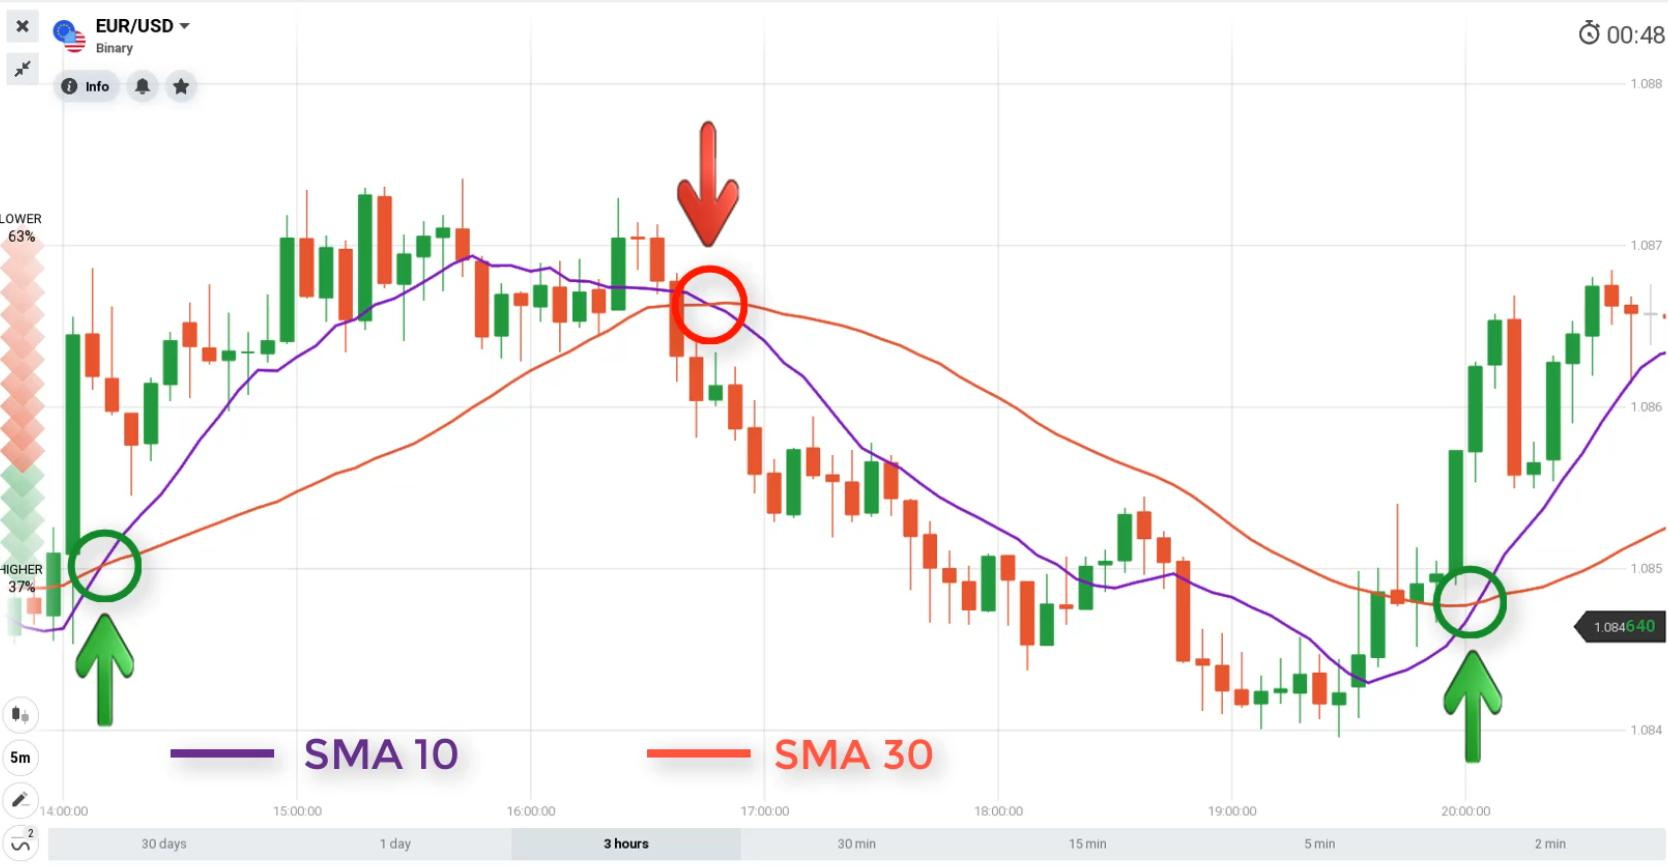 Find an entry point using the SMA10 and SMA30